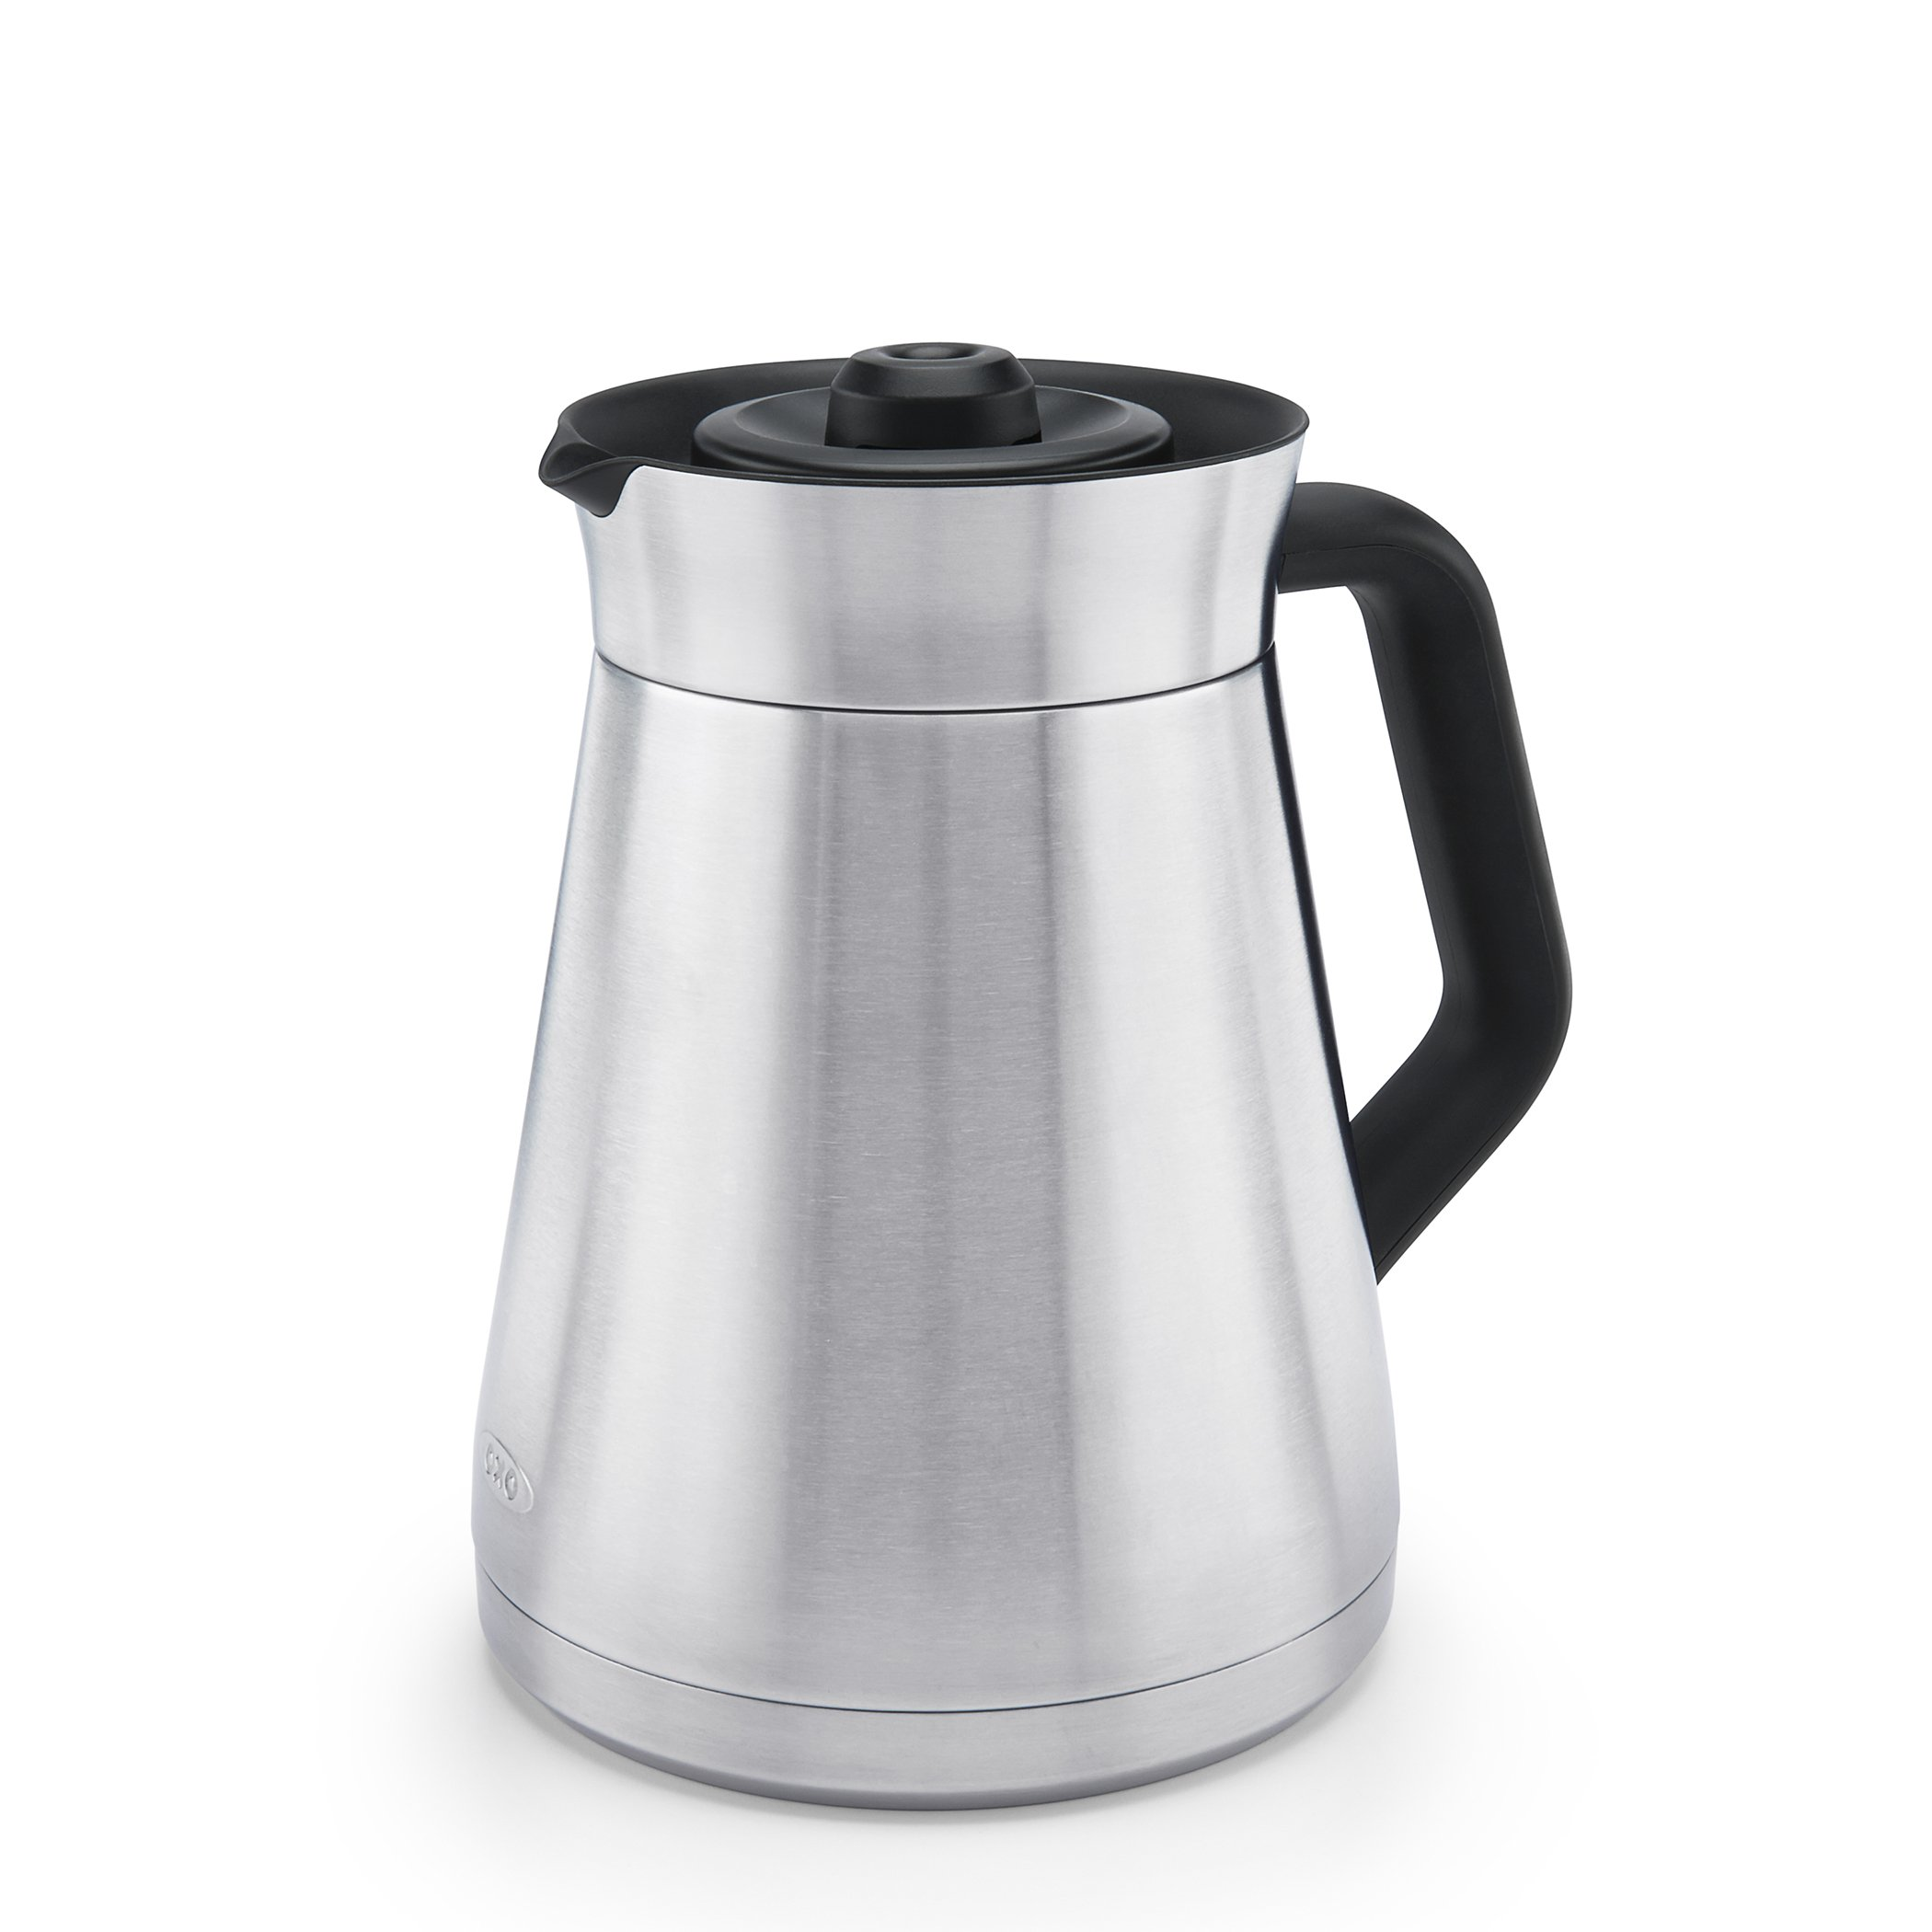 OXO 8715700 On 12 Cup Coffee Maker and Brewing System Replacement Carafe, Stainless Steel by OXO